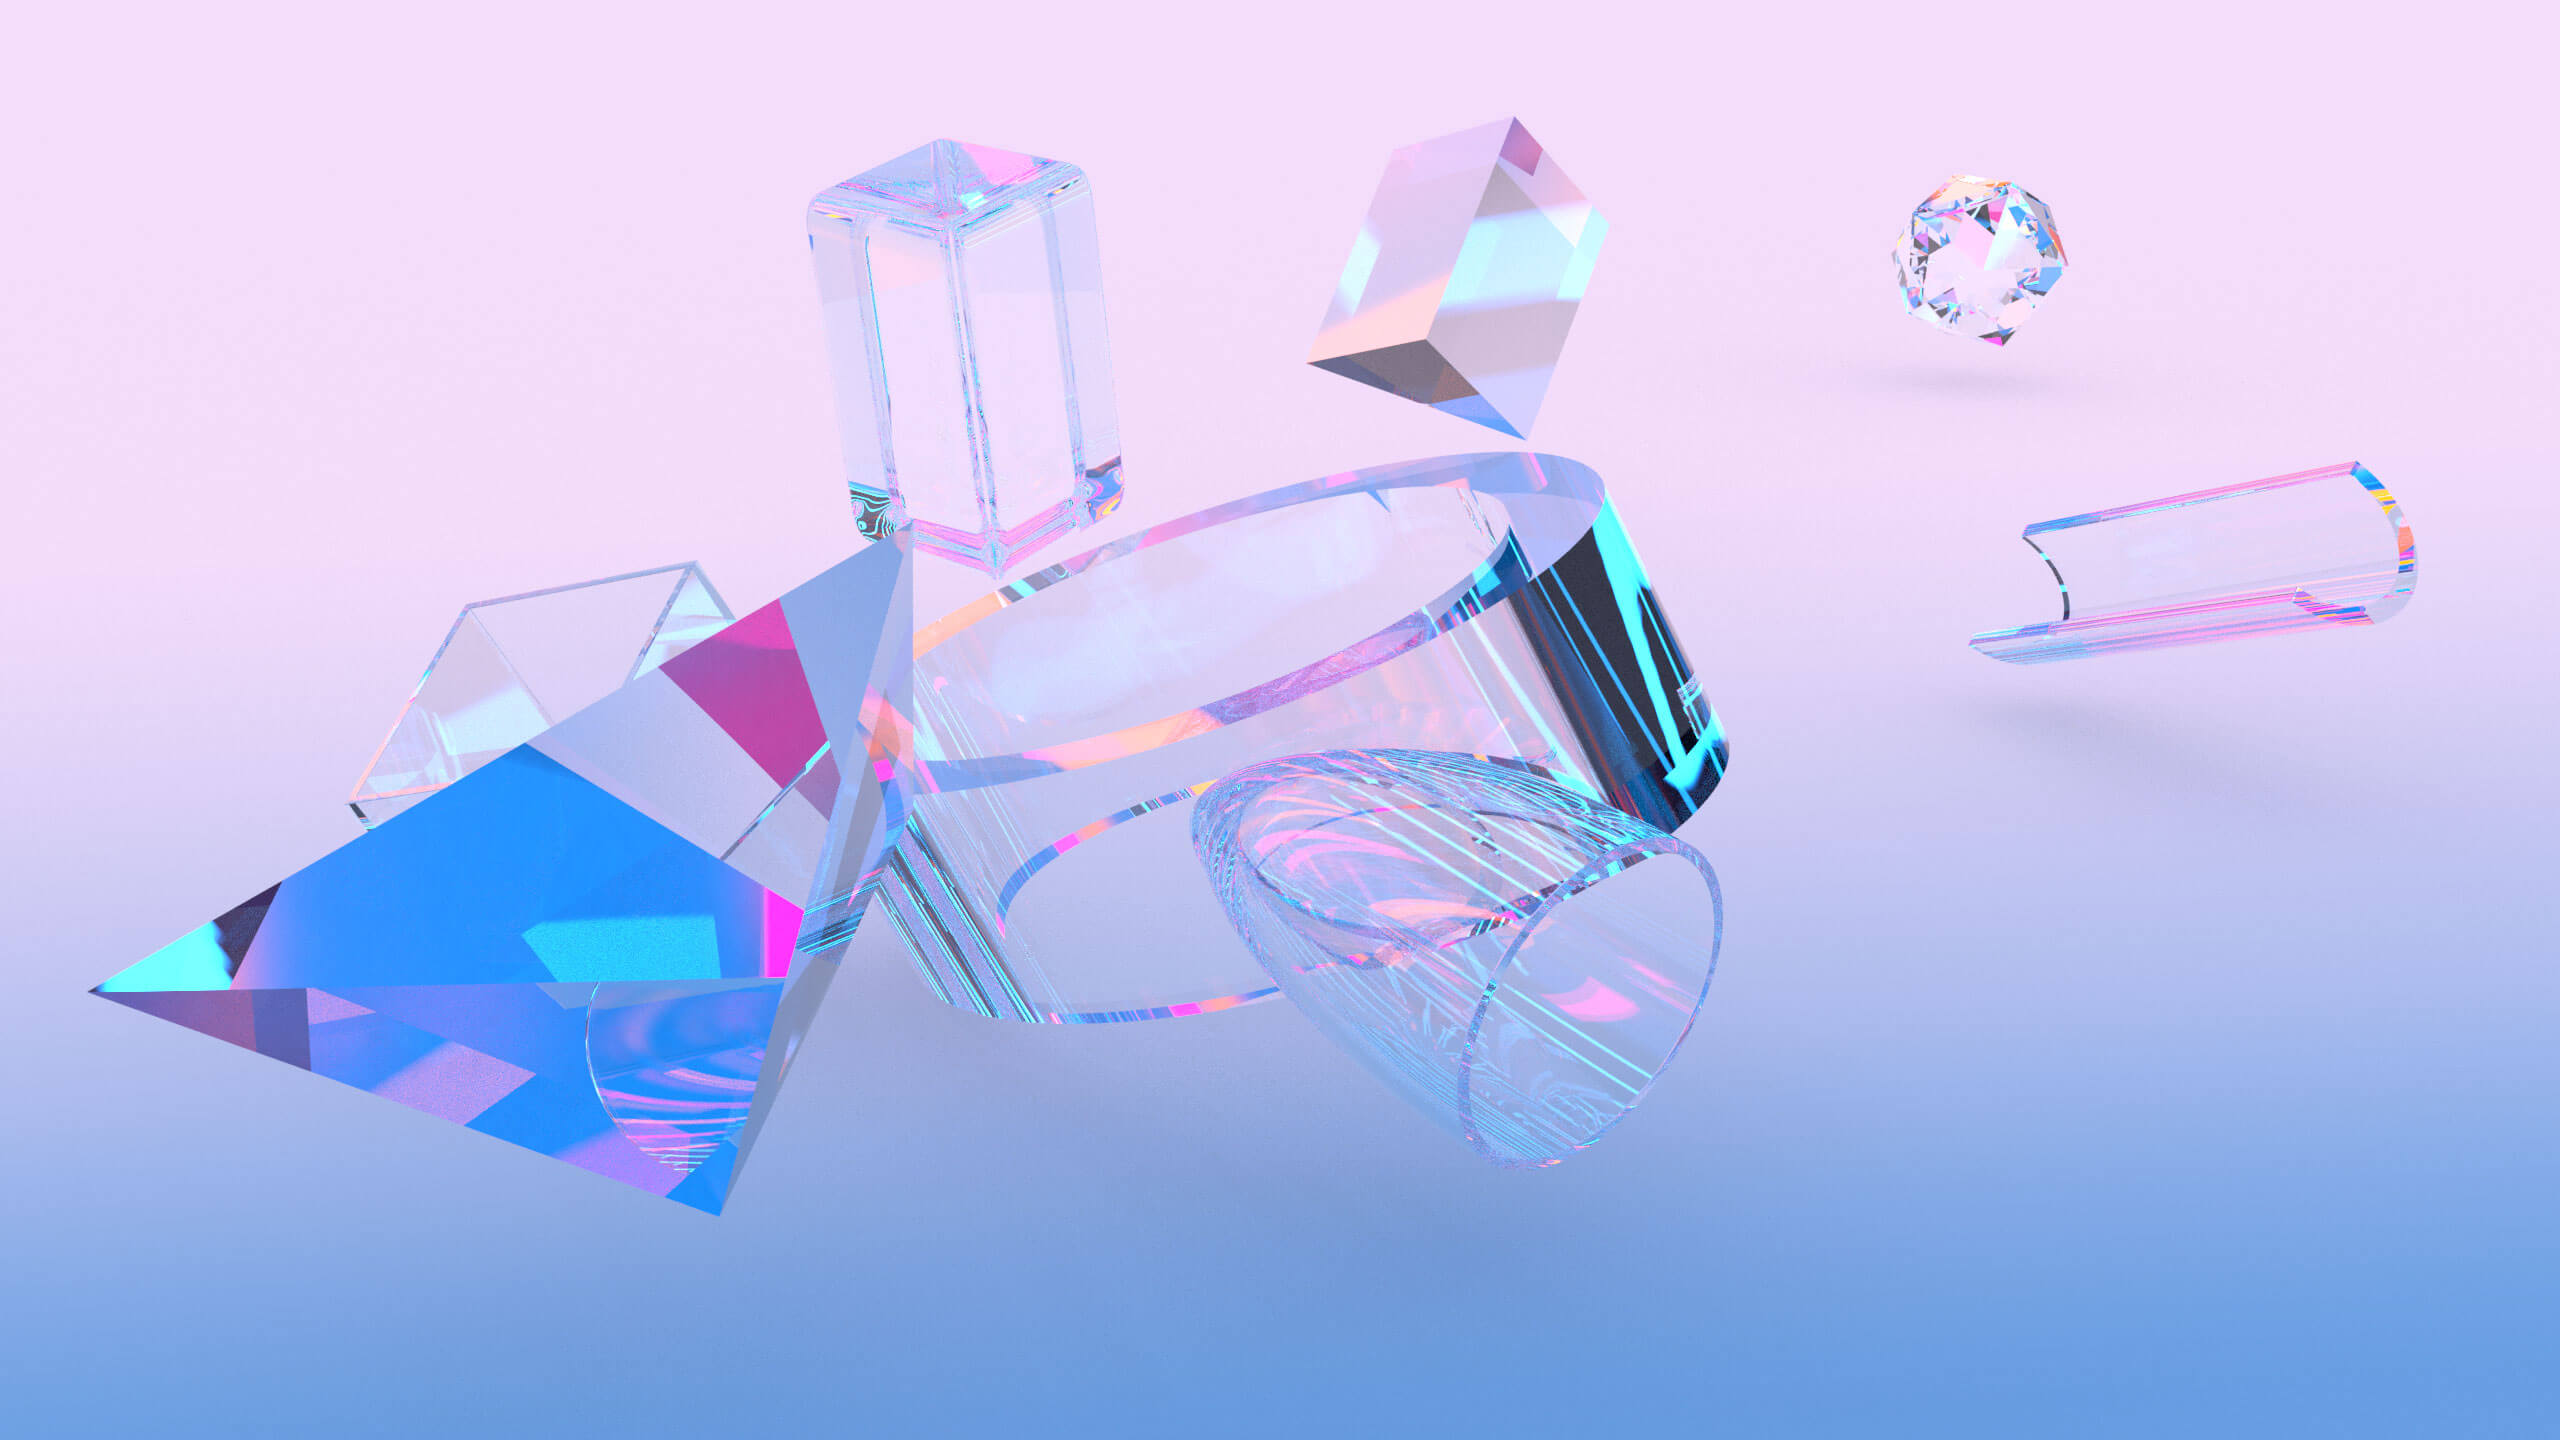 Rendering in violet and other light colors that shows different objects which look transparent or like crystals.